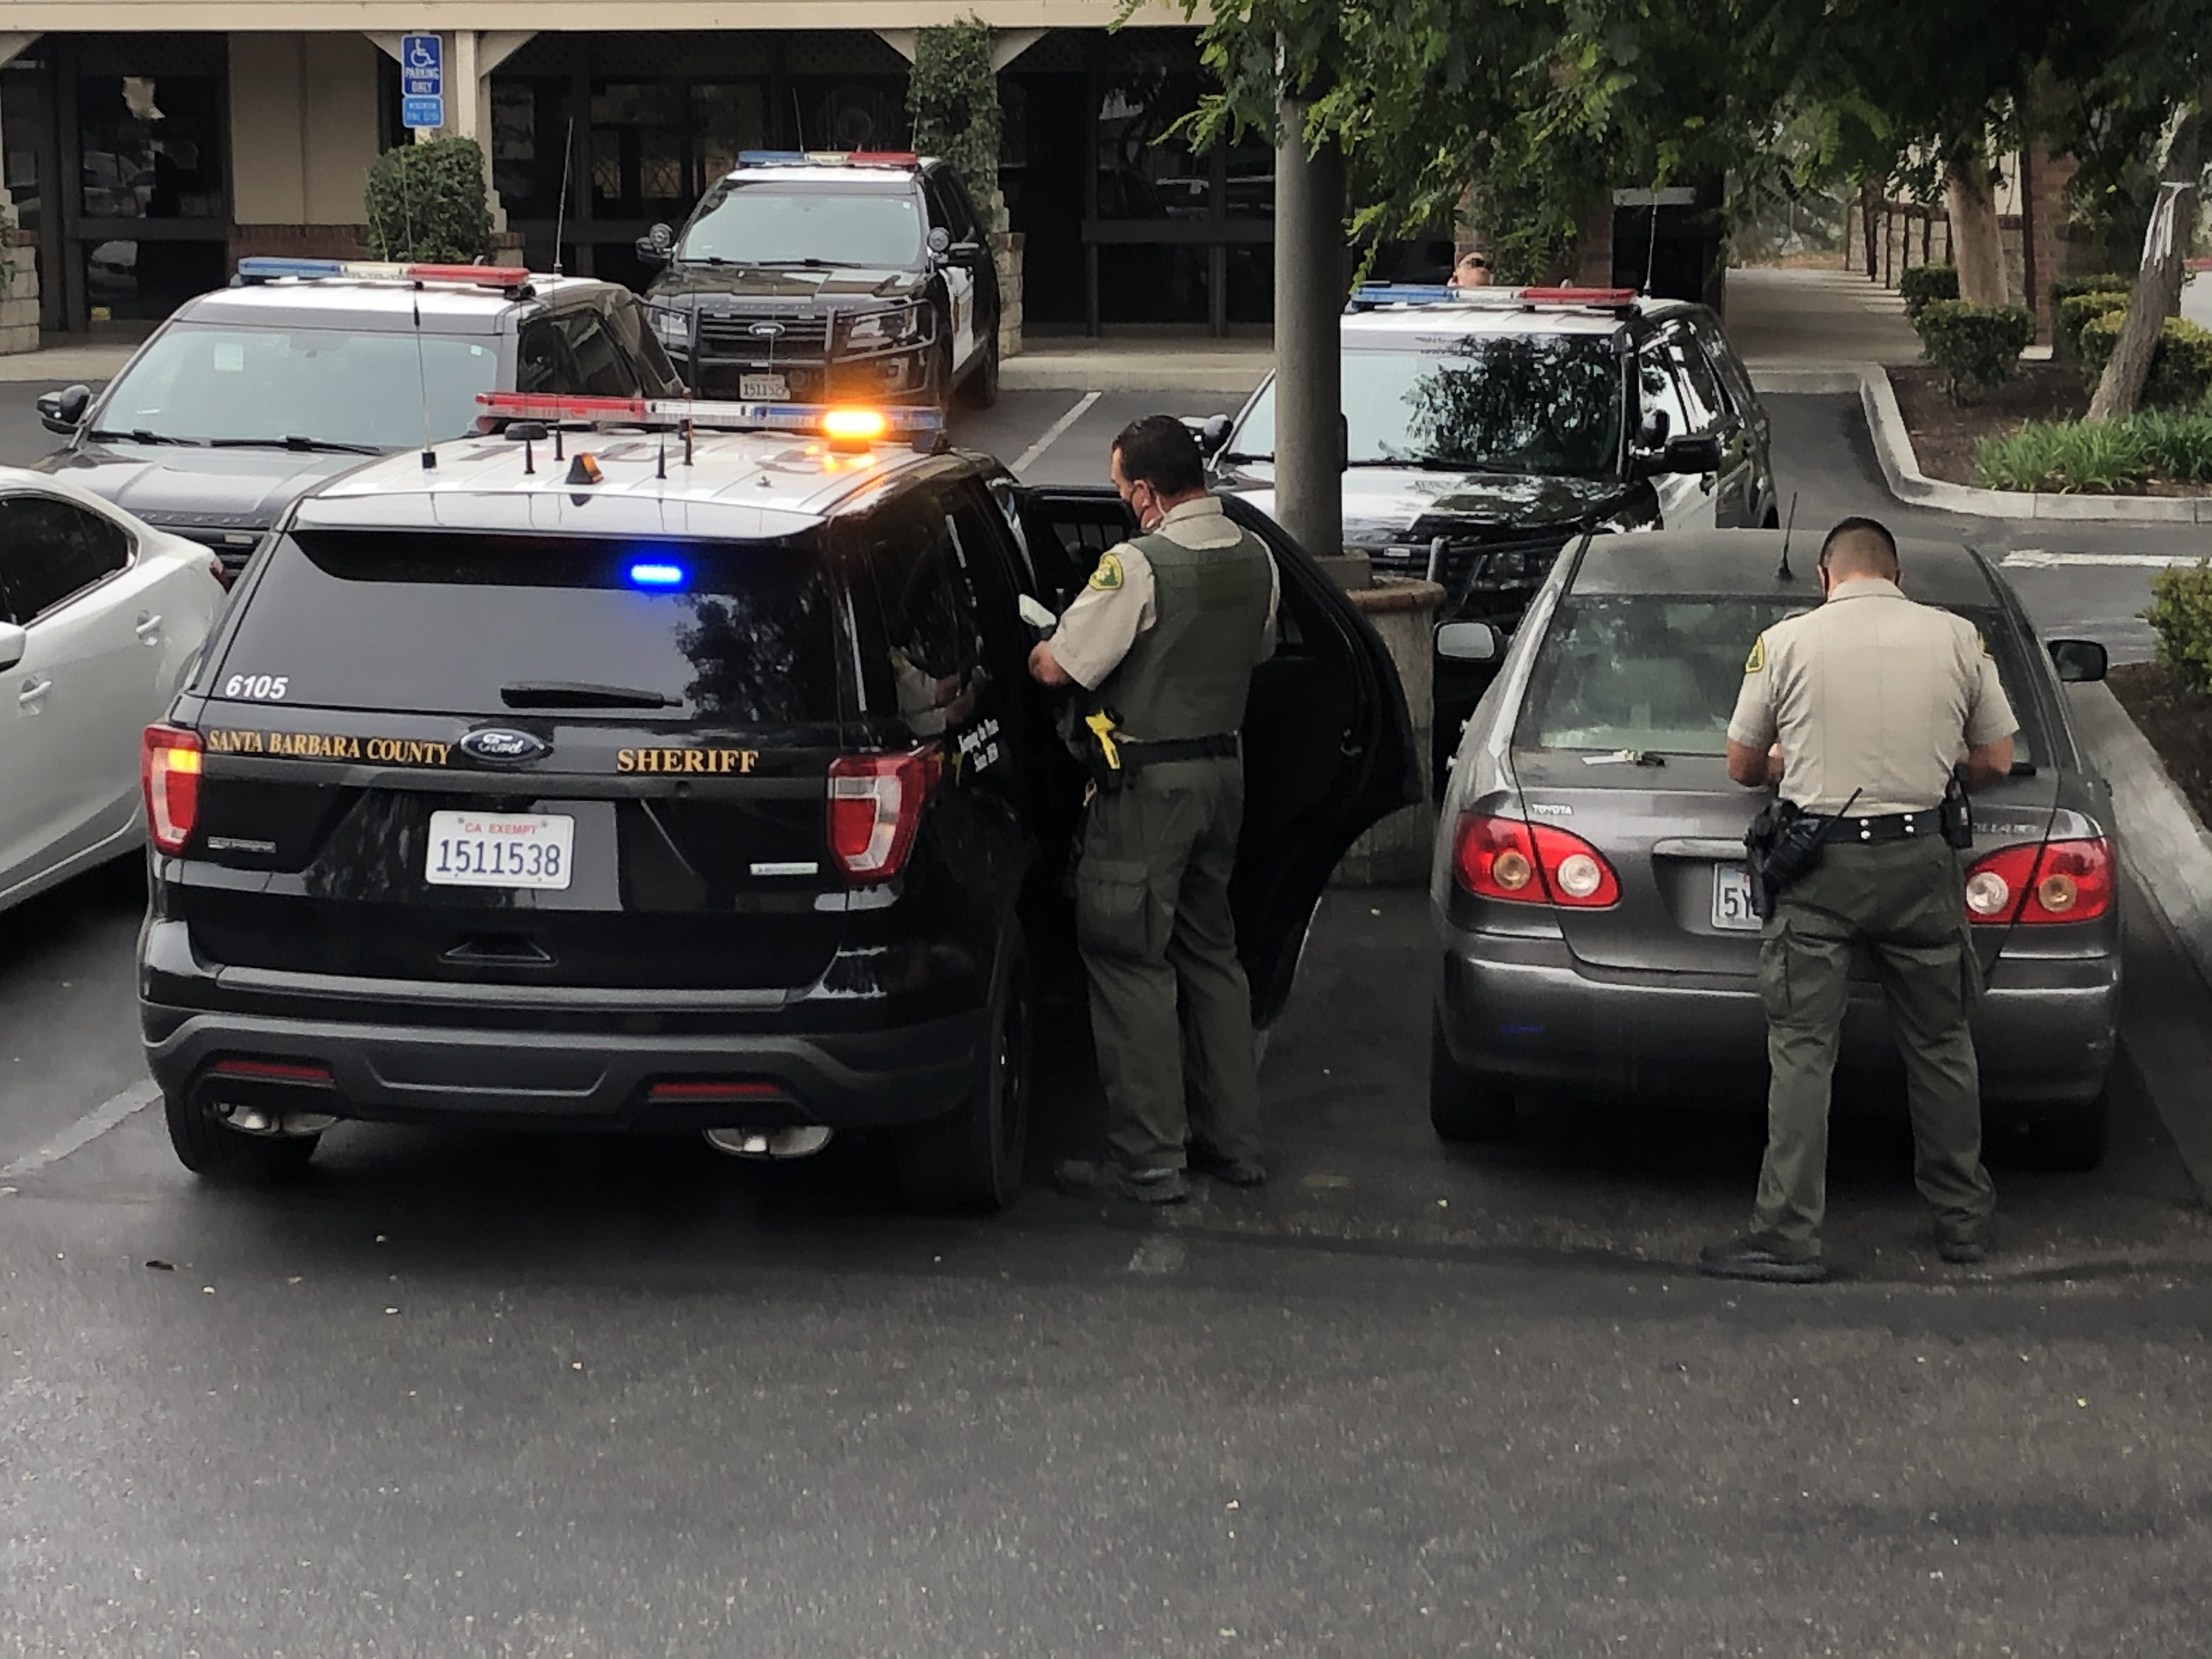 Driver arrested following Orcutt road rage incident, officials say